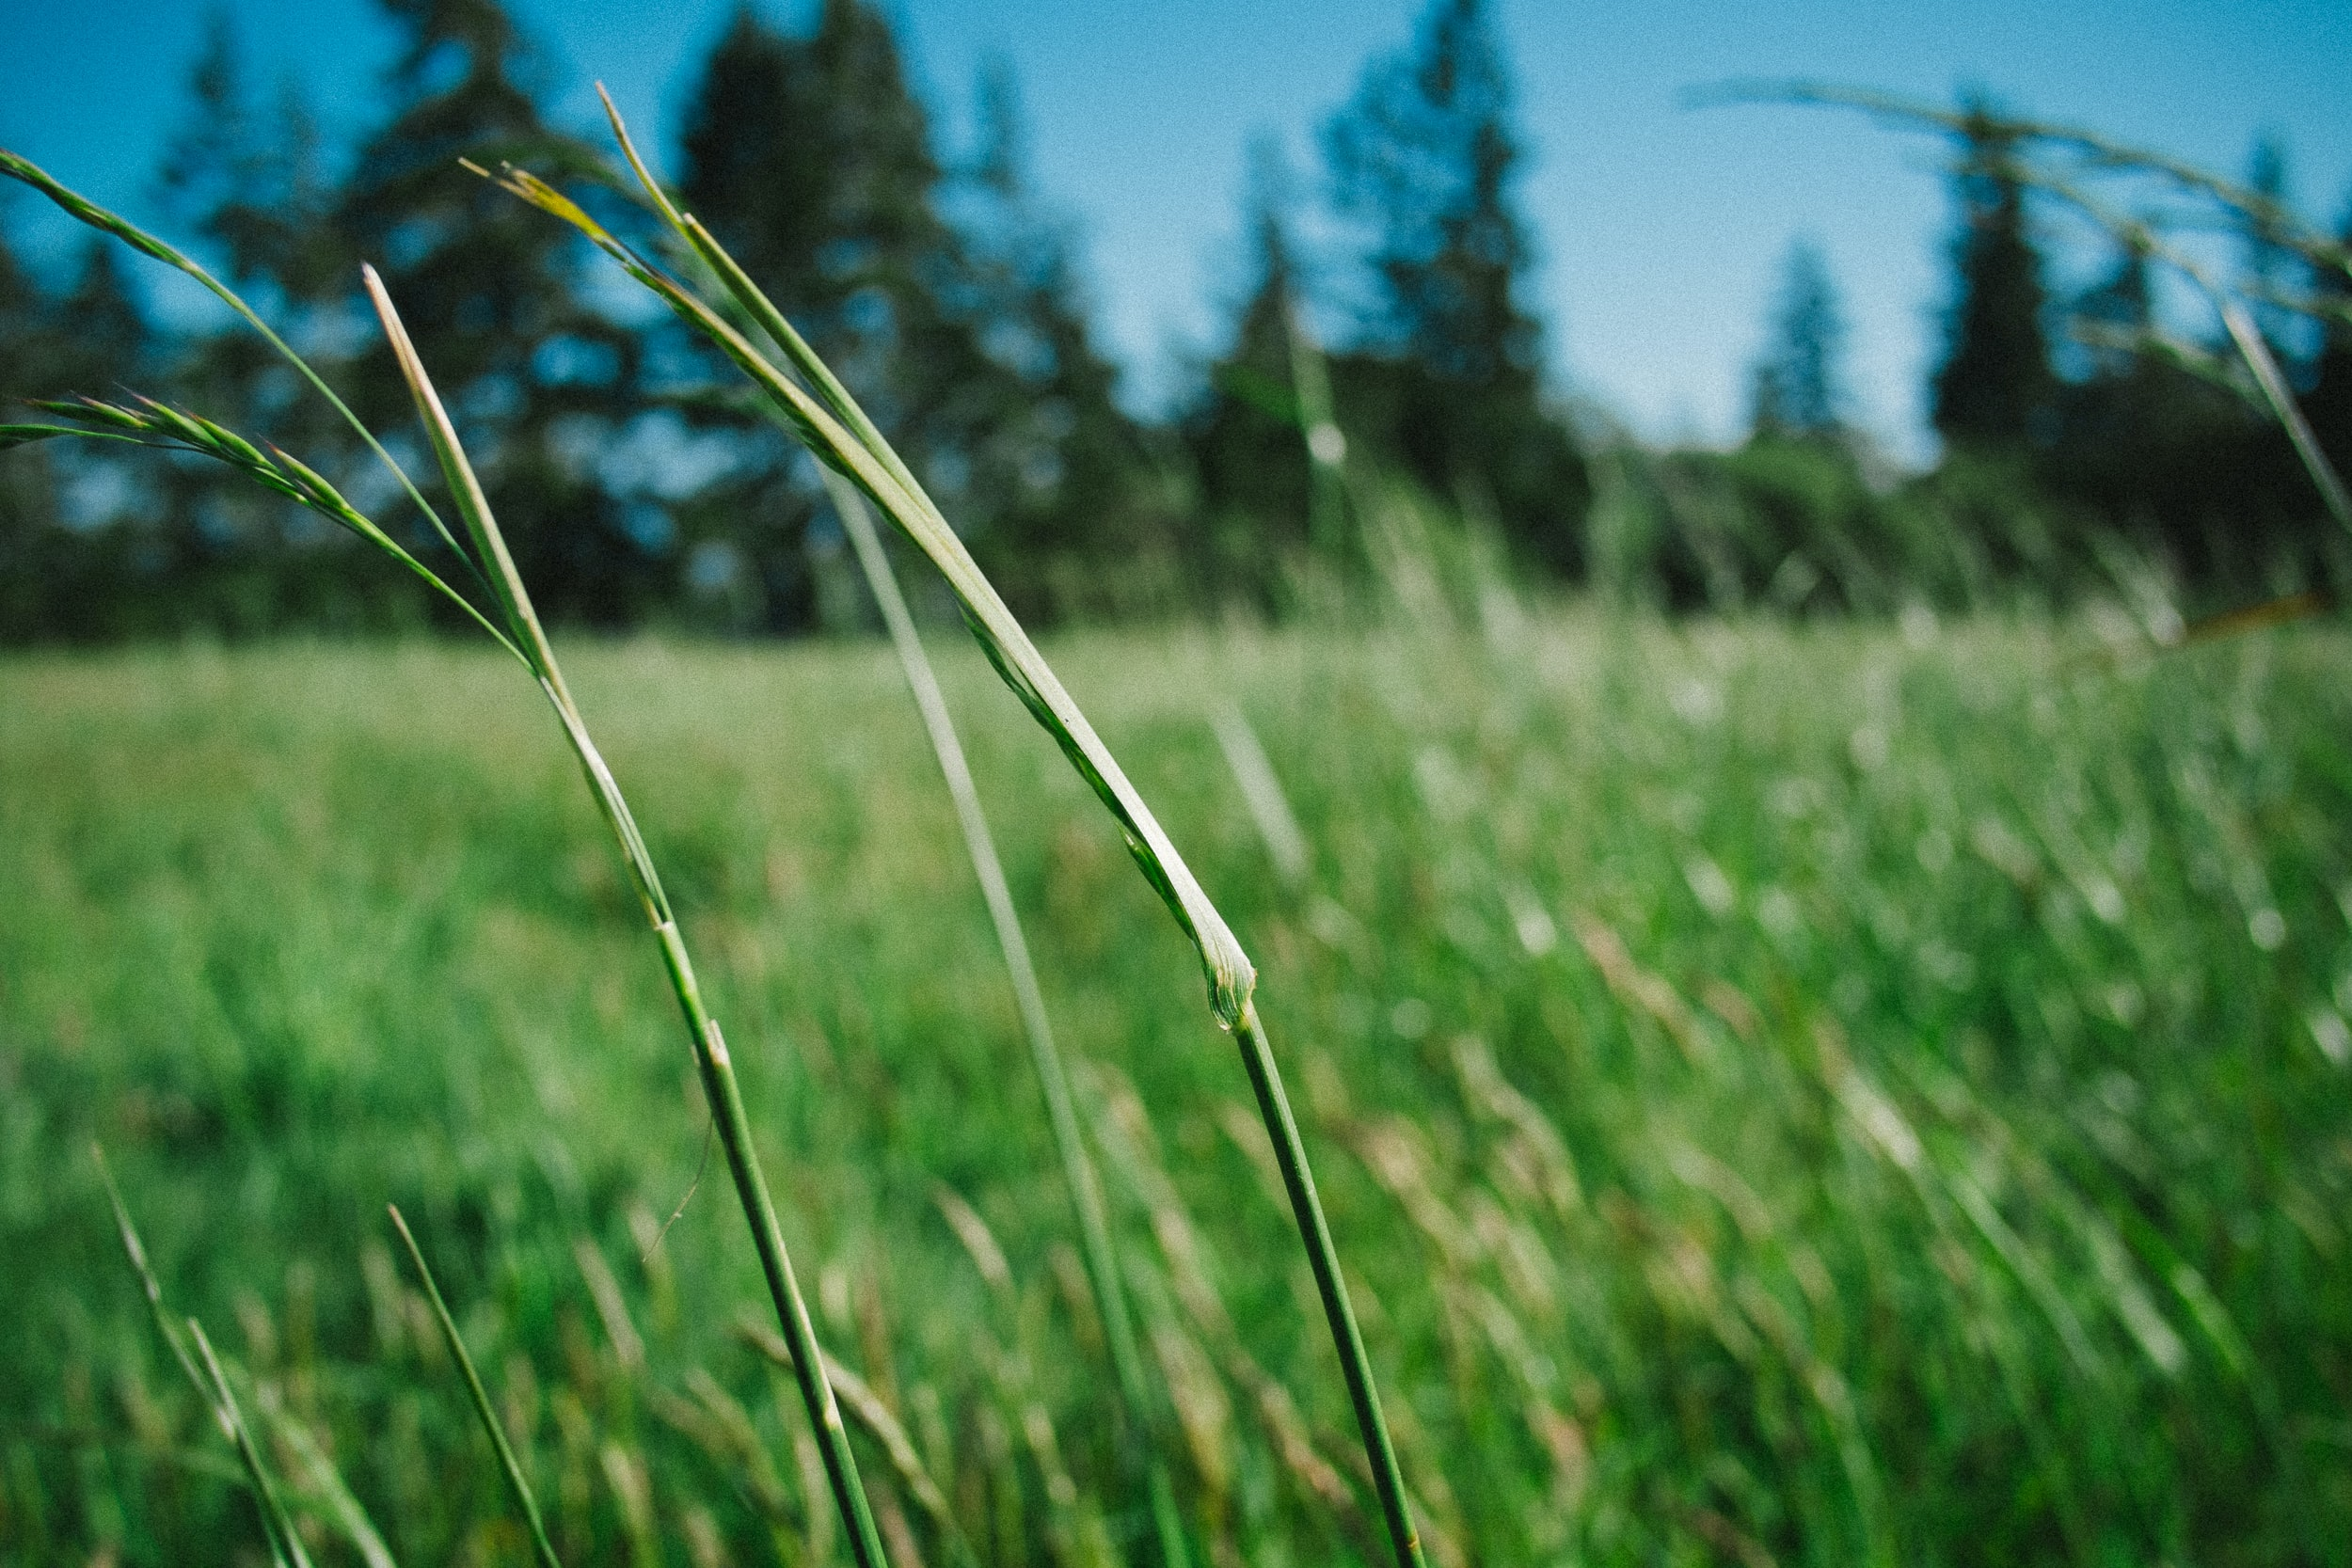 A macro shot of tall blades of grass swaying in the wind